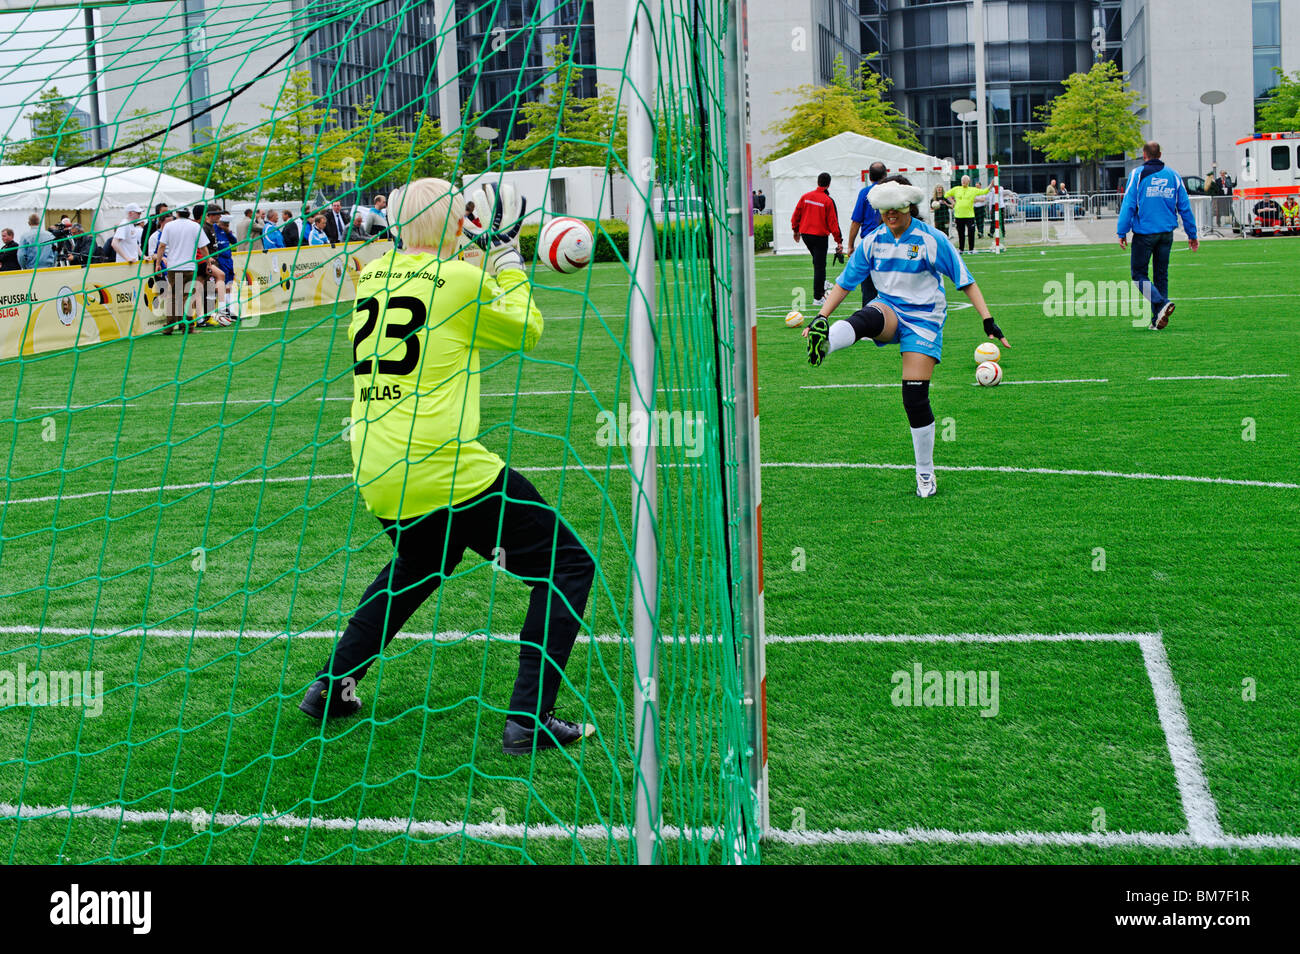 First international match of the German blind footballing team outside the Reichstag building, Berlin, Germany - Stock Image